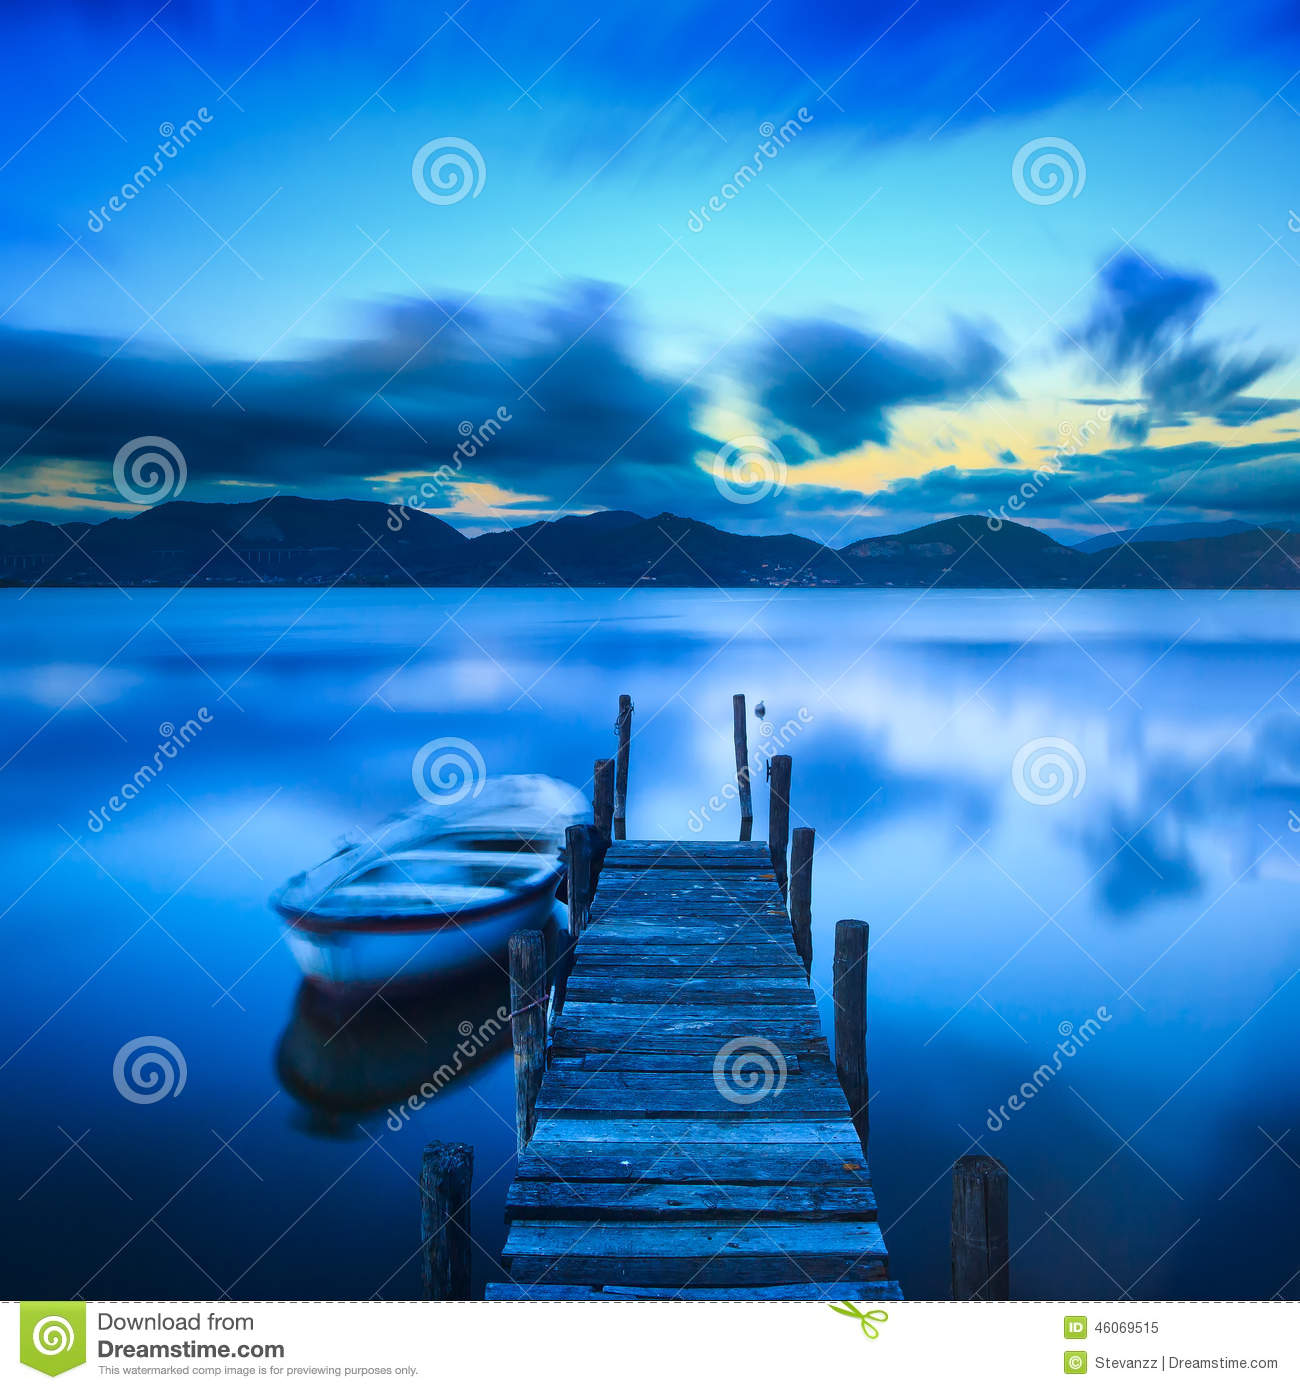 Download Wooden Pier Or Jetty And A Boat On A Lake Sunset. Versilia Tusca Stock Image - Image of photography, coast: 46069515